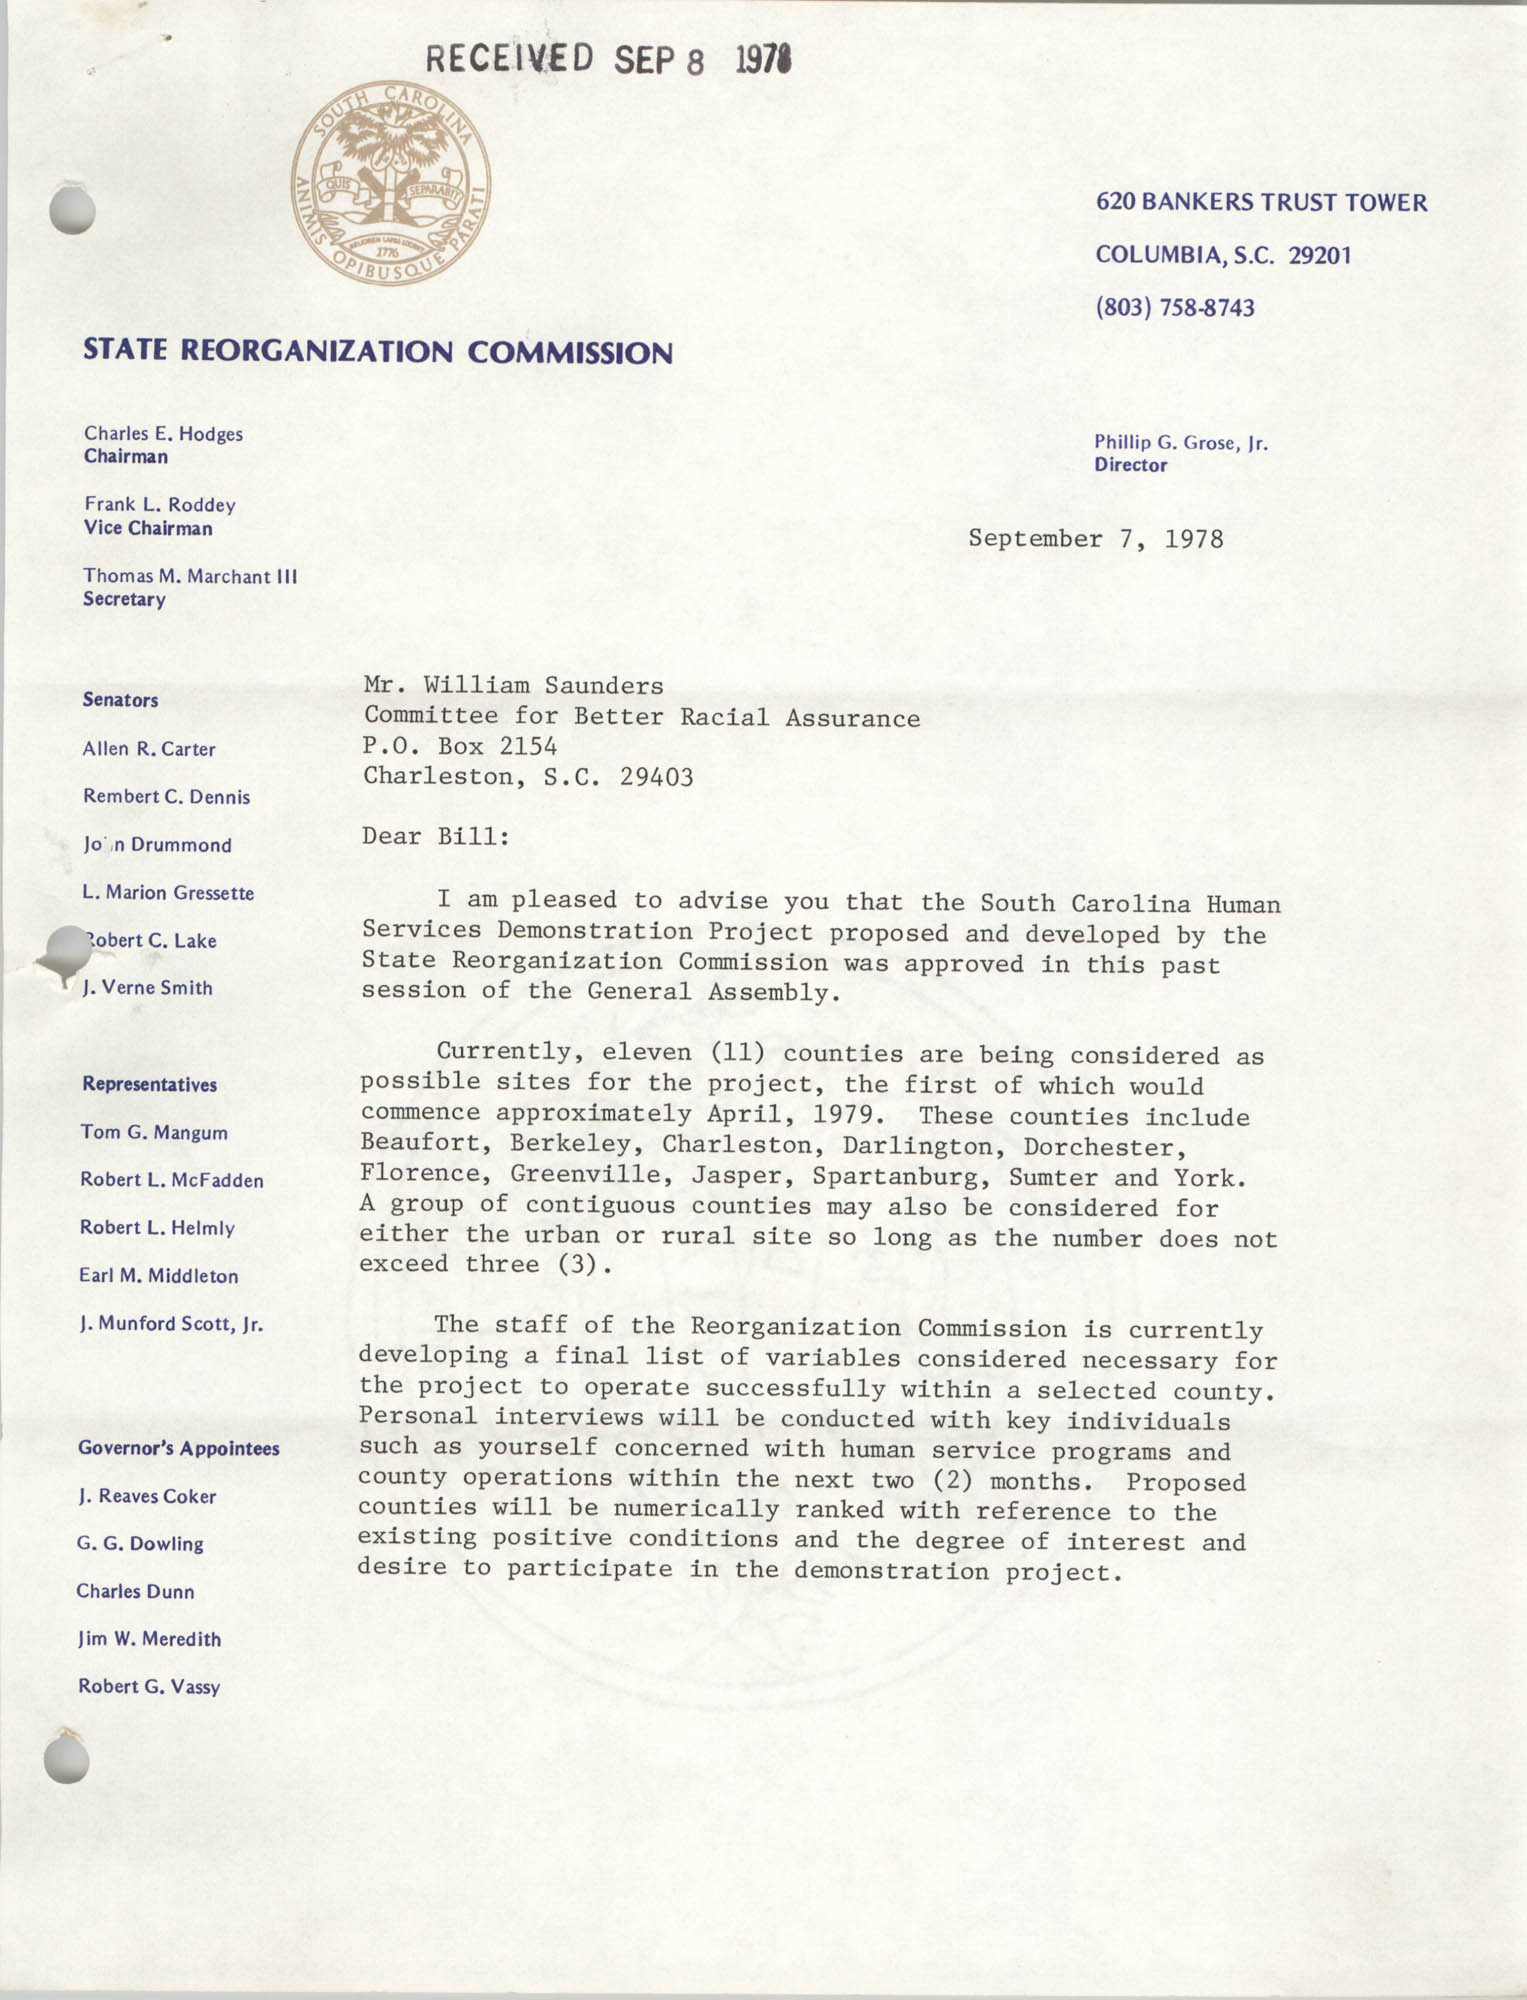 Letter from Allen R. Carter to William Saunders, September 7, 1978, Page 1